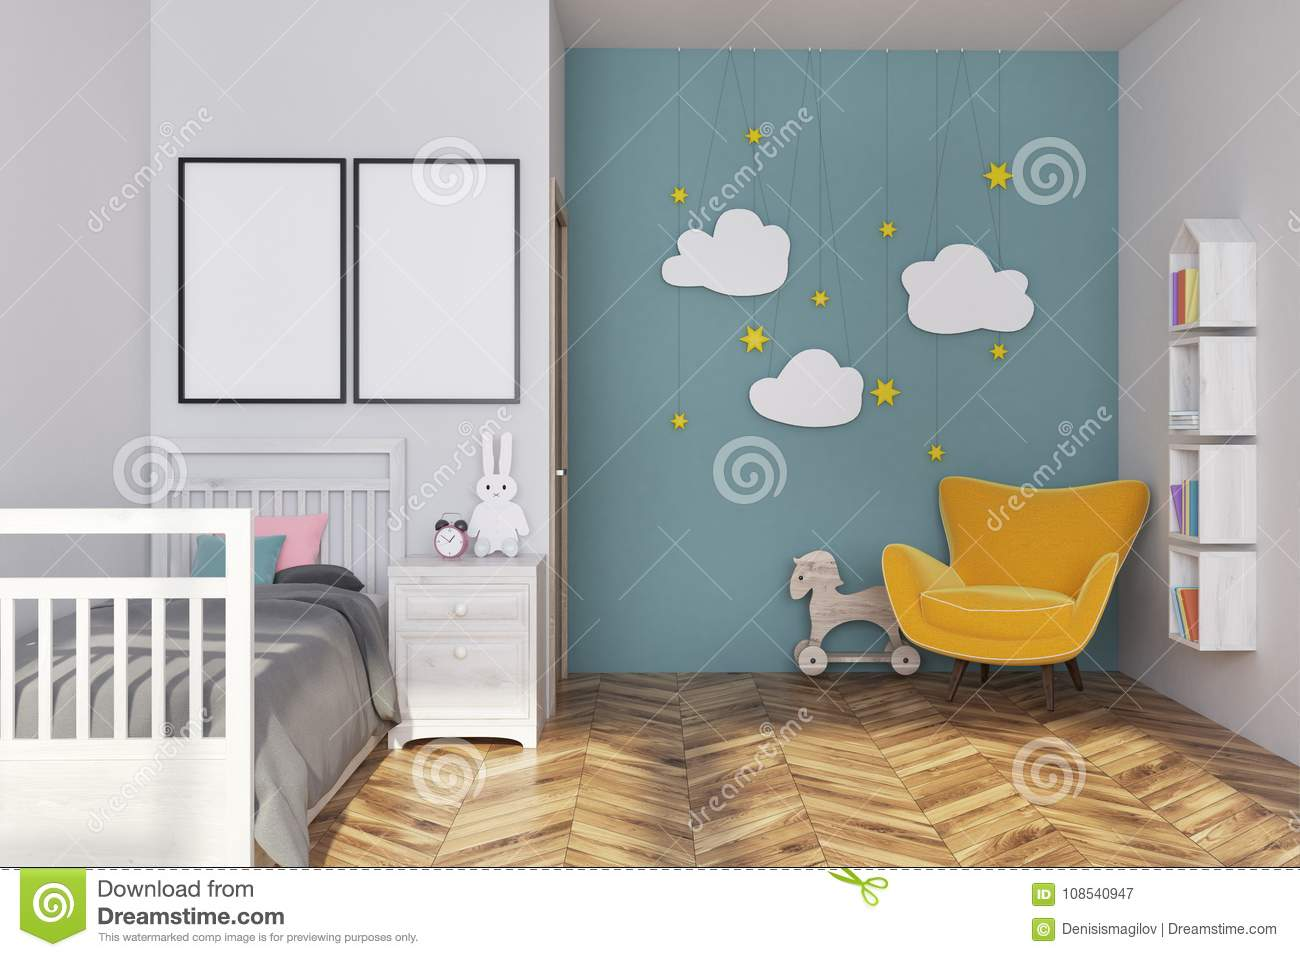 blue nursery interior posters armchair white blue nursery interior gray bed yellow armchair cloud decoration